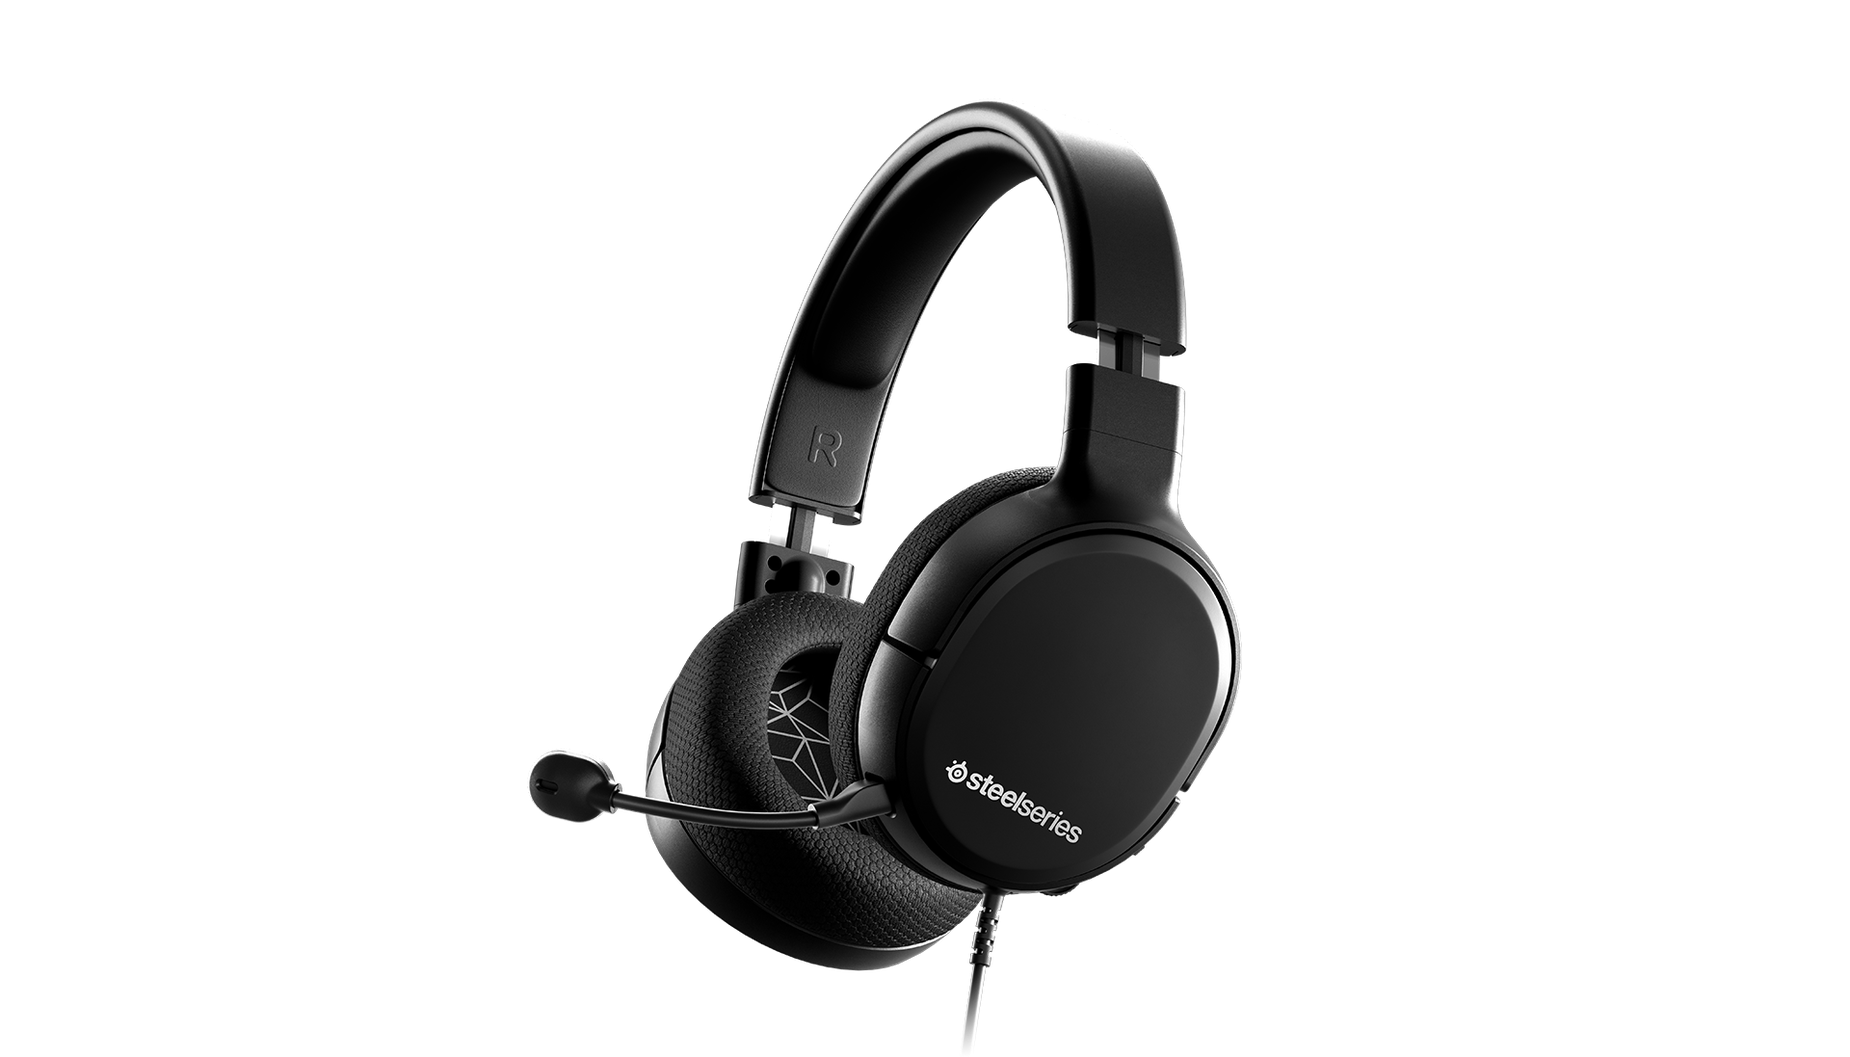 Arctis 1 headset floating on a blank background